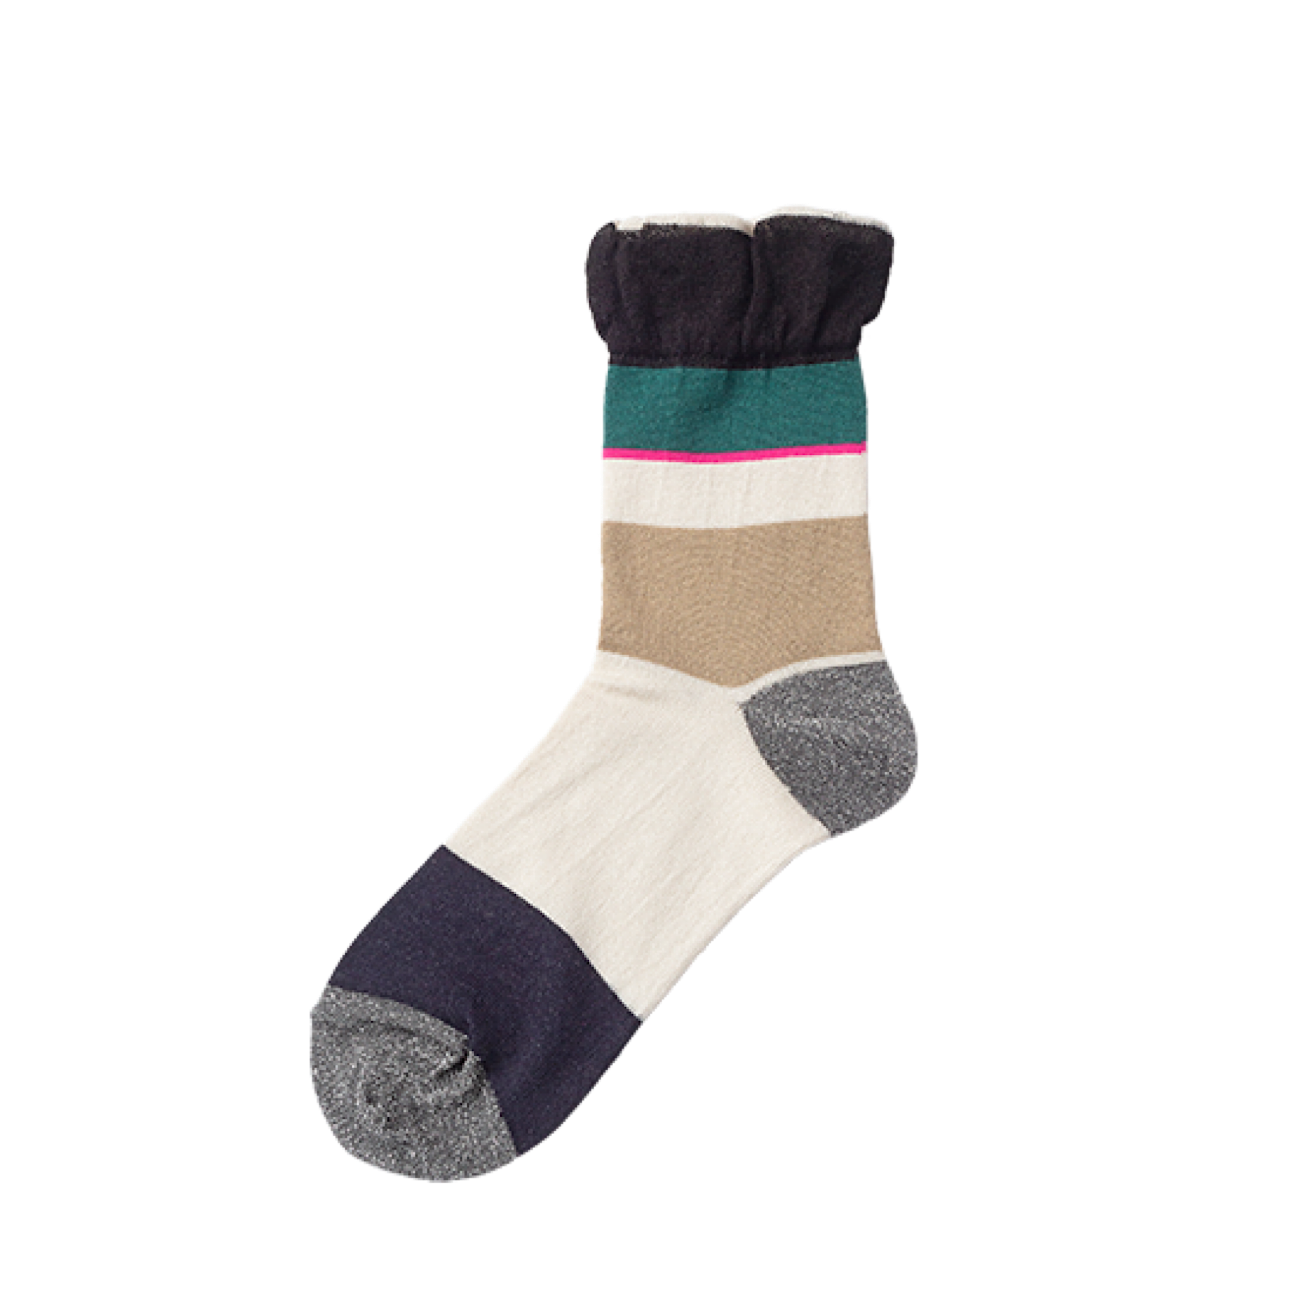 TRICOTE/toe lame randam socks